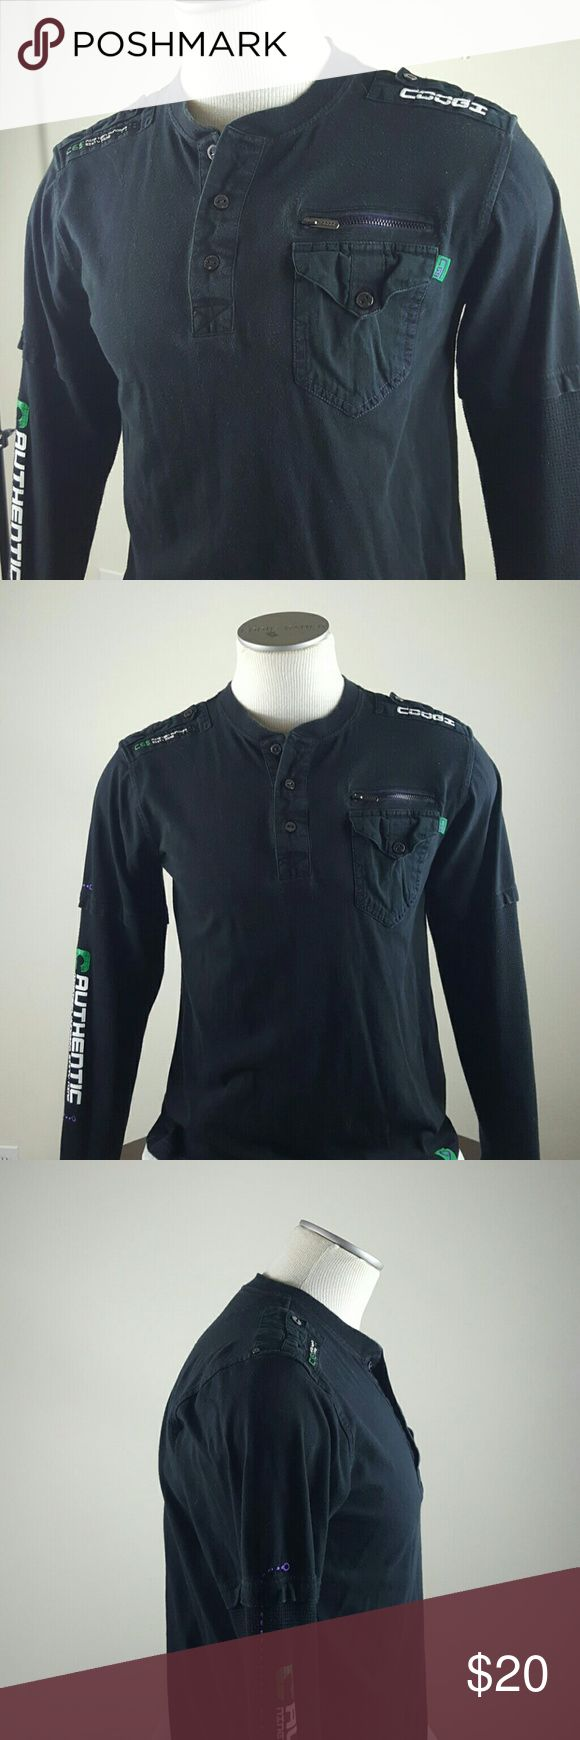 17 best ideas about long sleeved polo shirts on pinterest for Same day t shirt printing austin